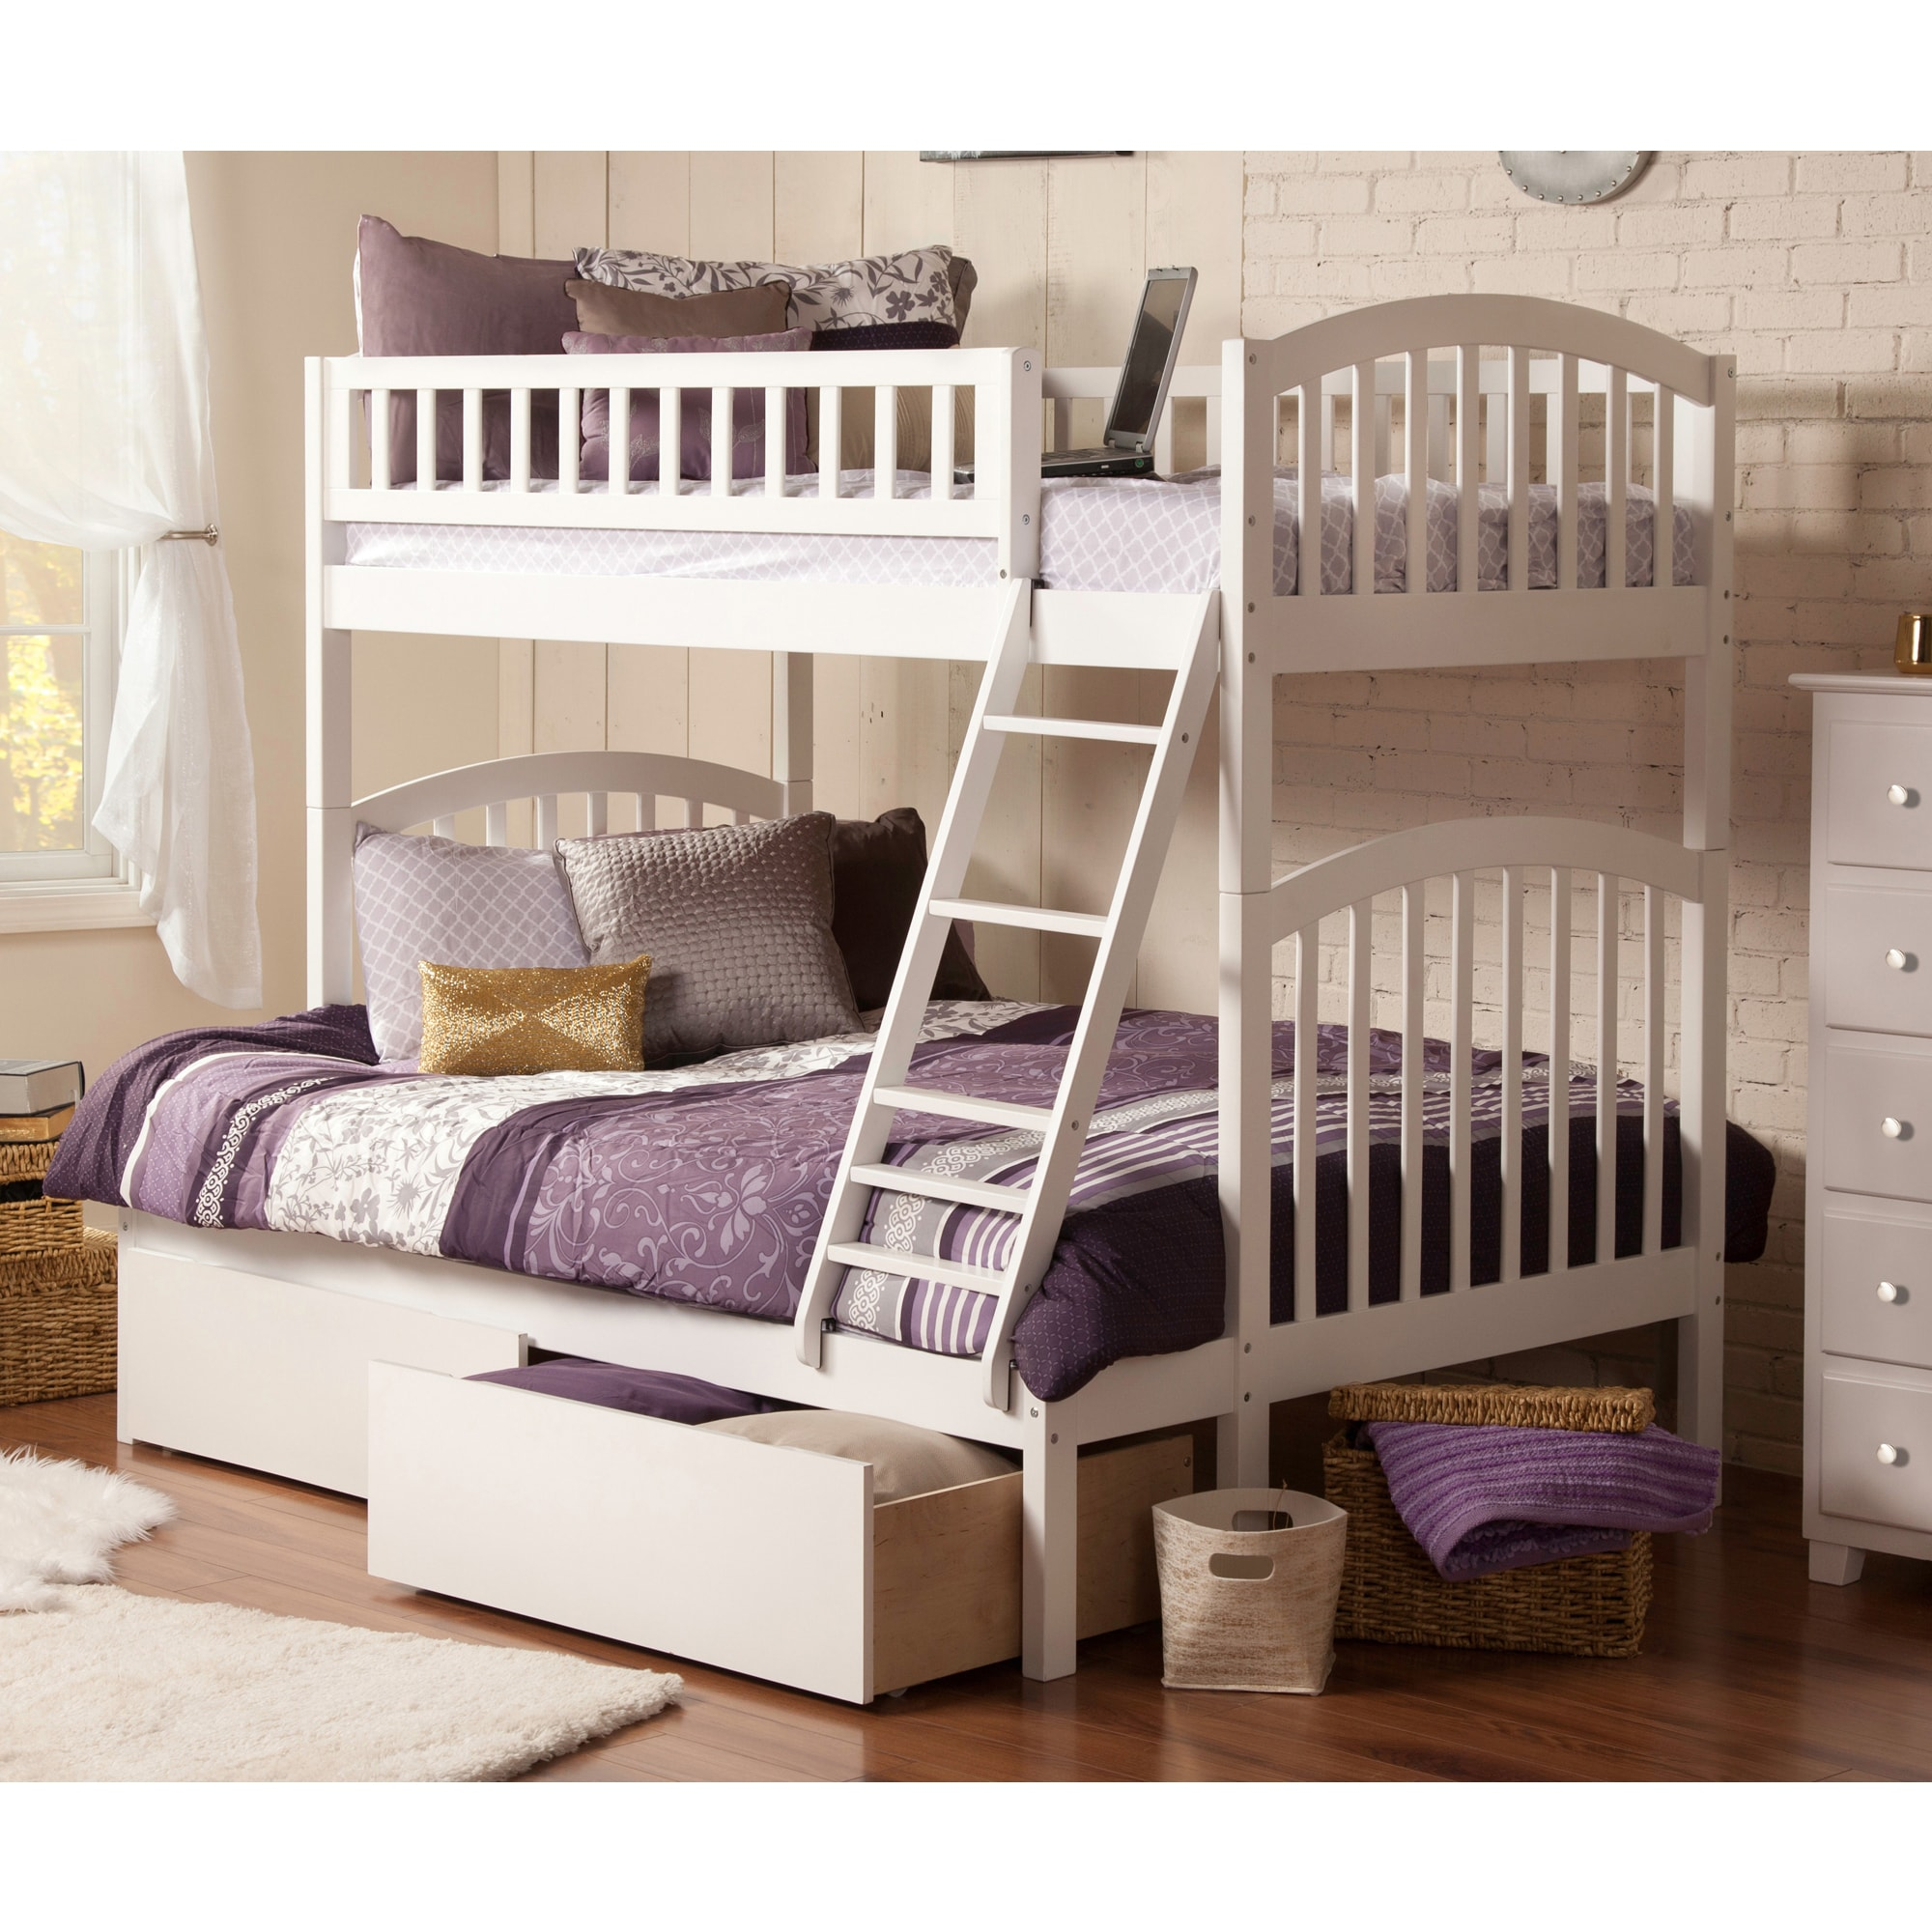 Atlantic Furniture Atlantic Richland White Wood Twin over Full Bunk Bed with 2 Urban Bed Drawers